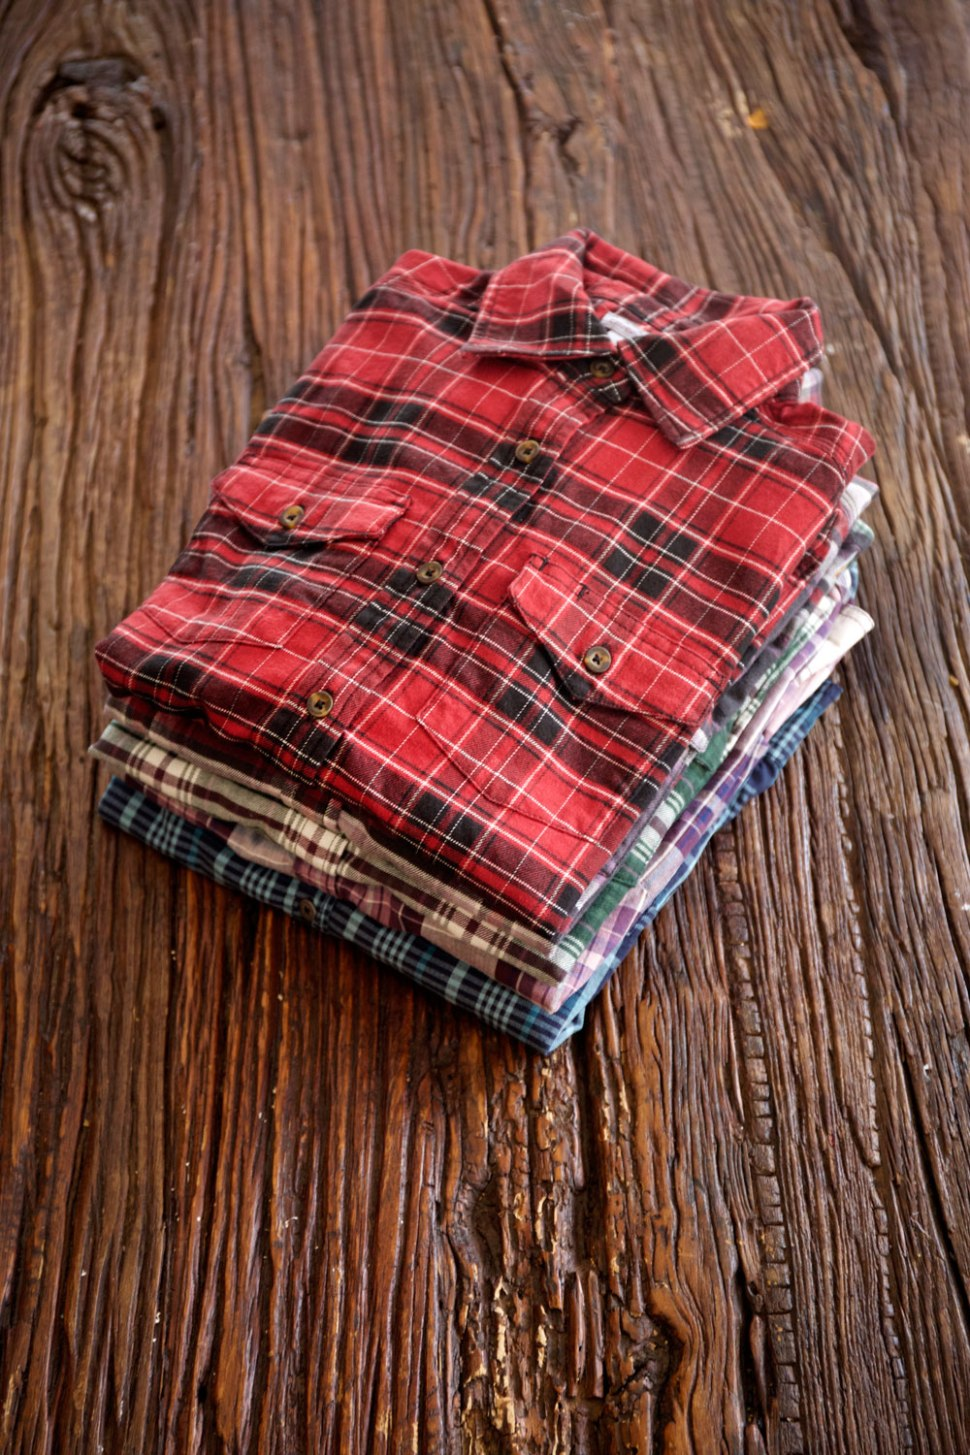 Carhartt Plaids / Crafted in Carhartt